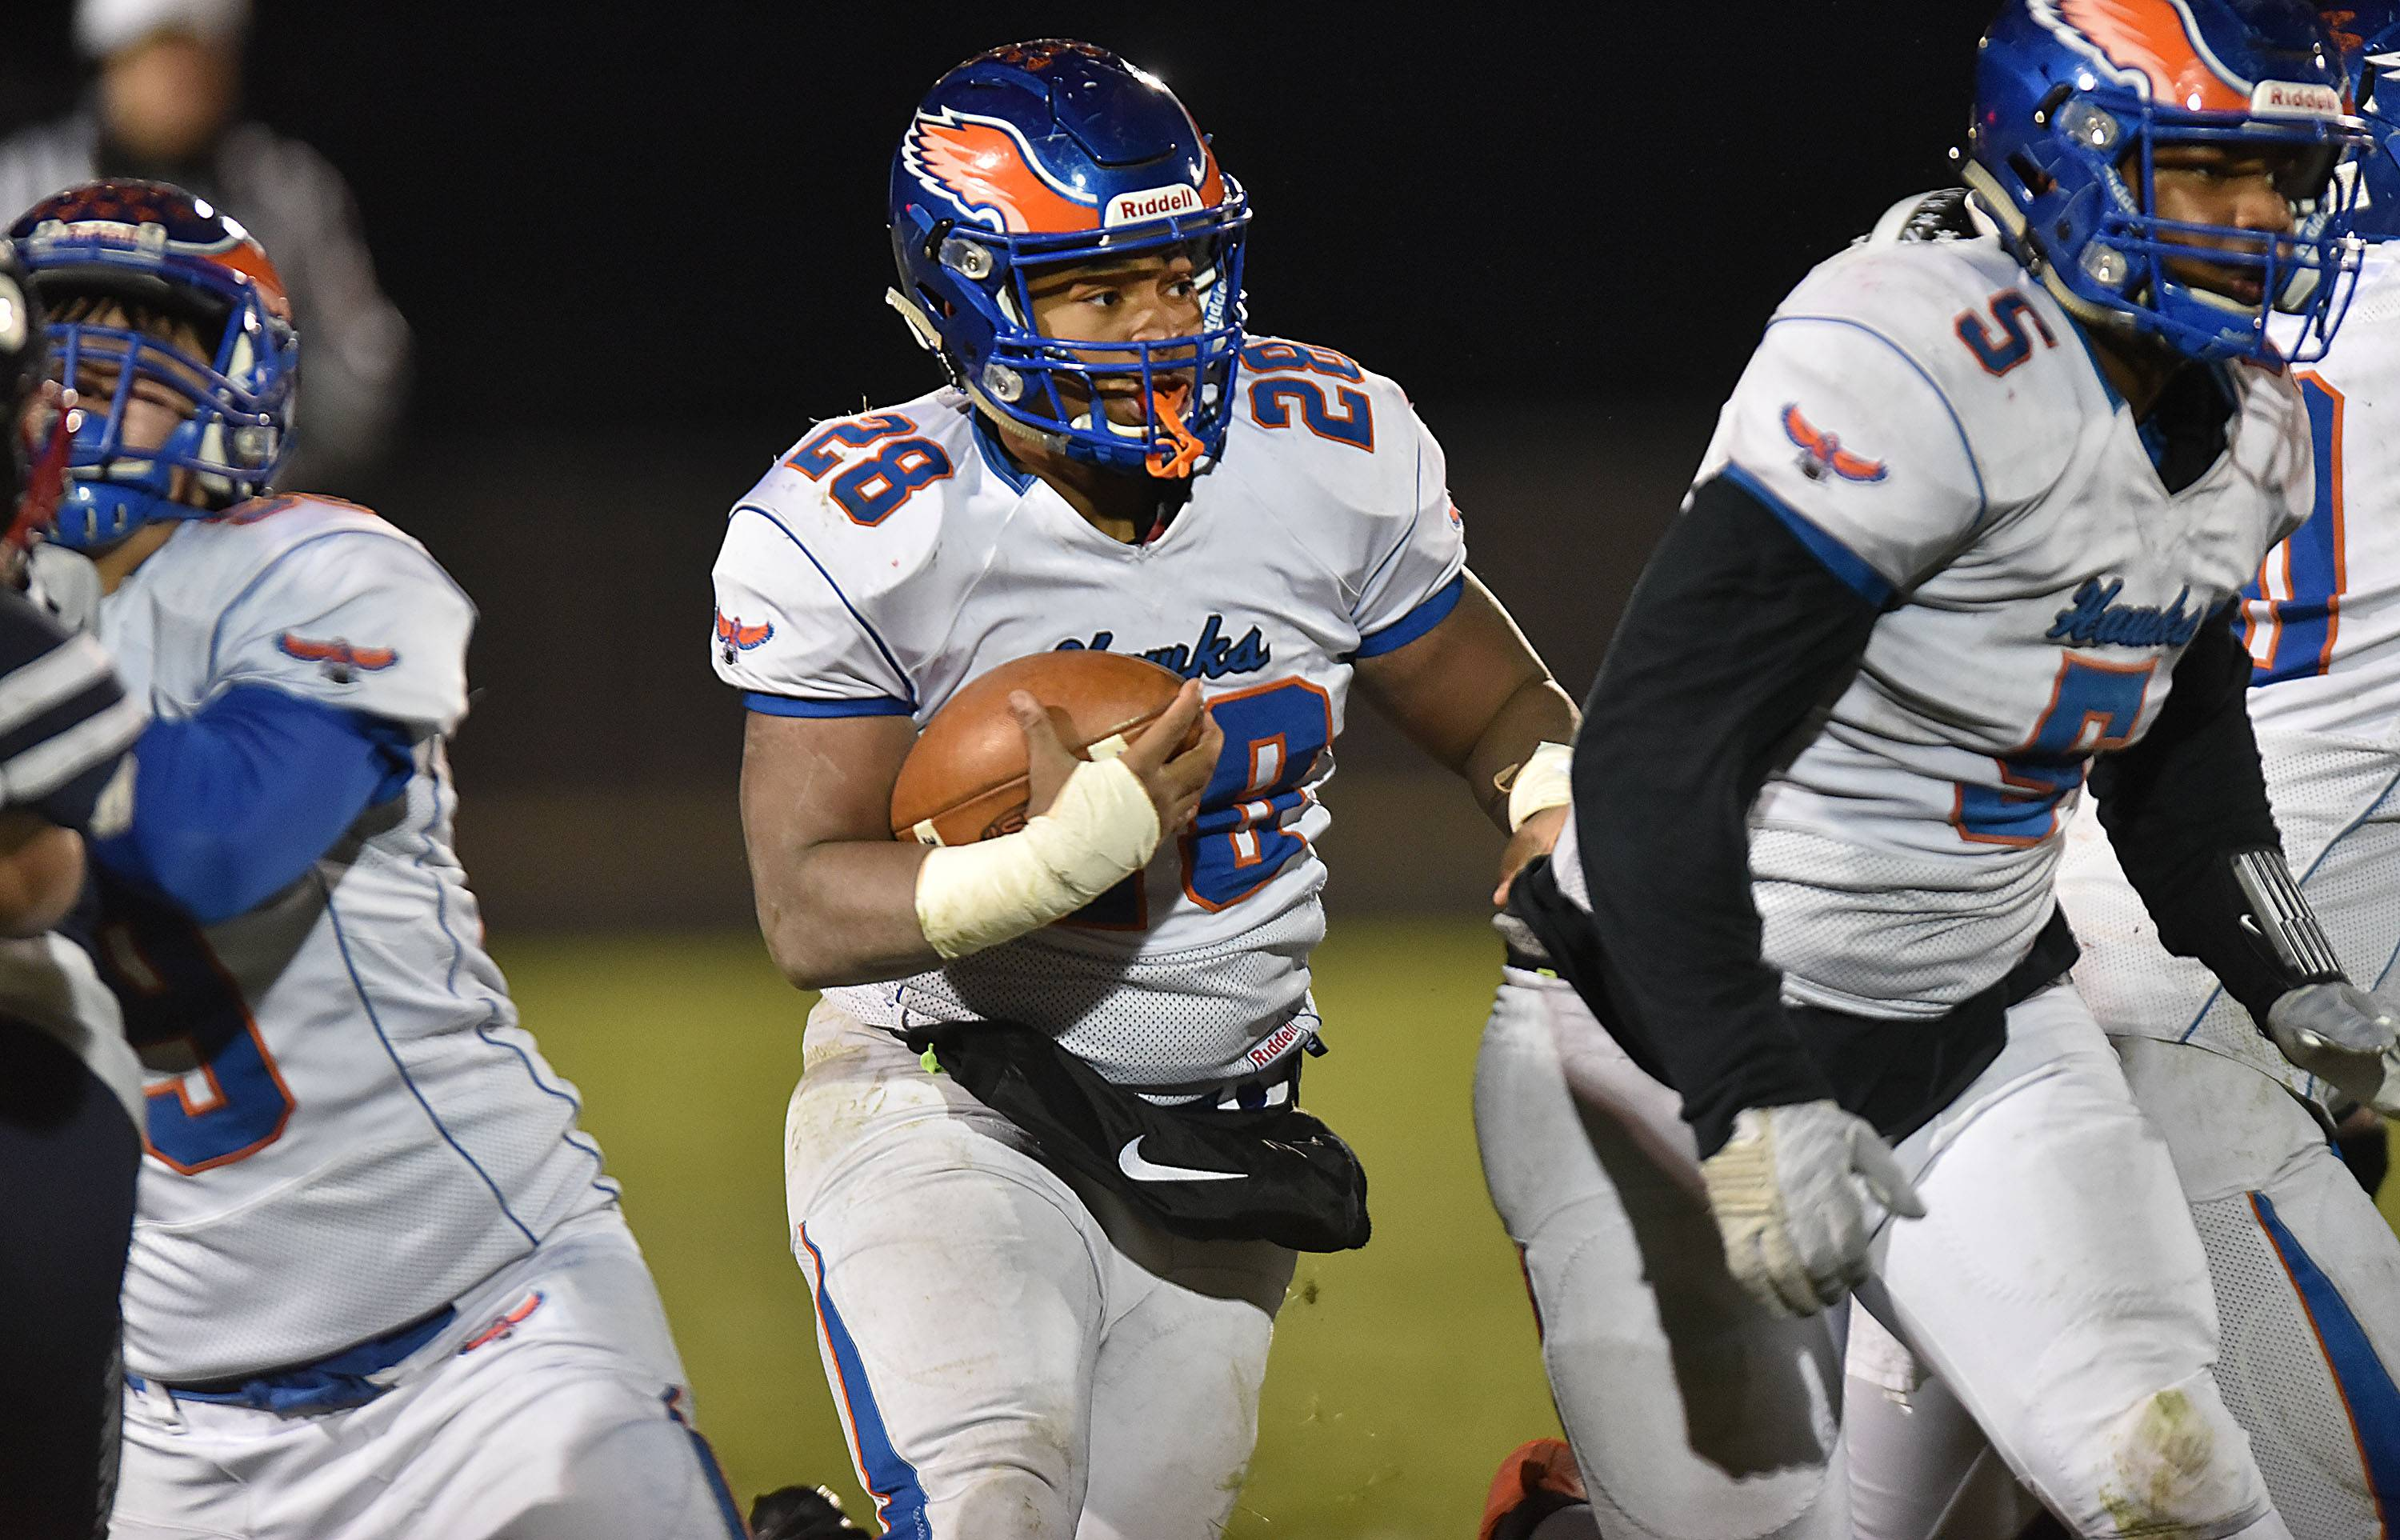 Hoffman Estates' Jaylin Johnson rumbles for second-half yardage against host Belvidere North Saturday in the Class 6A state quarterfinals.